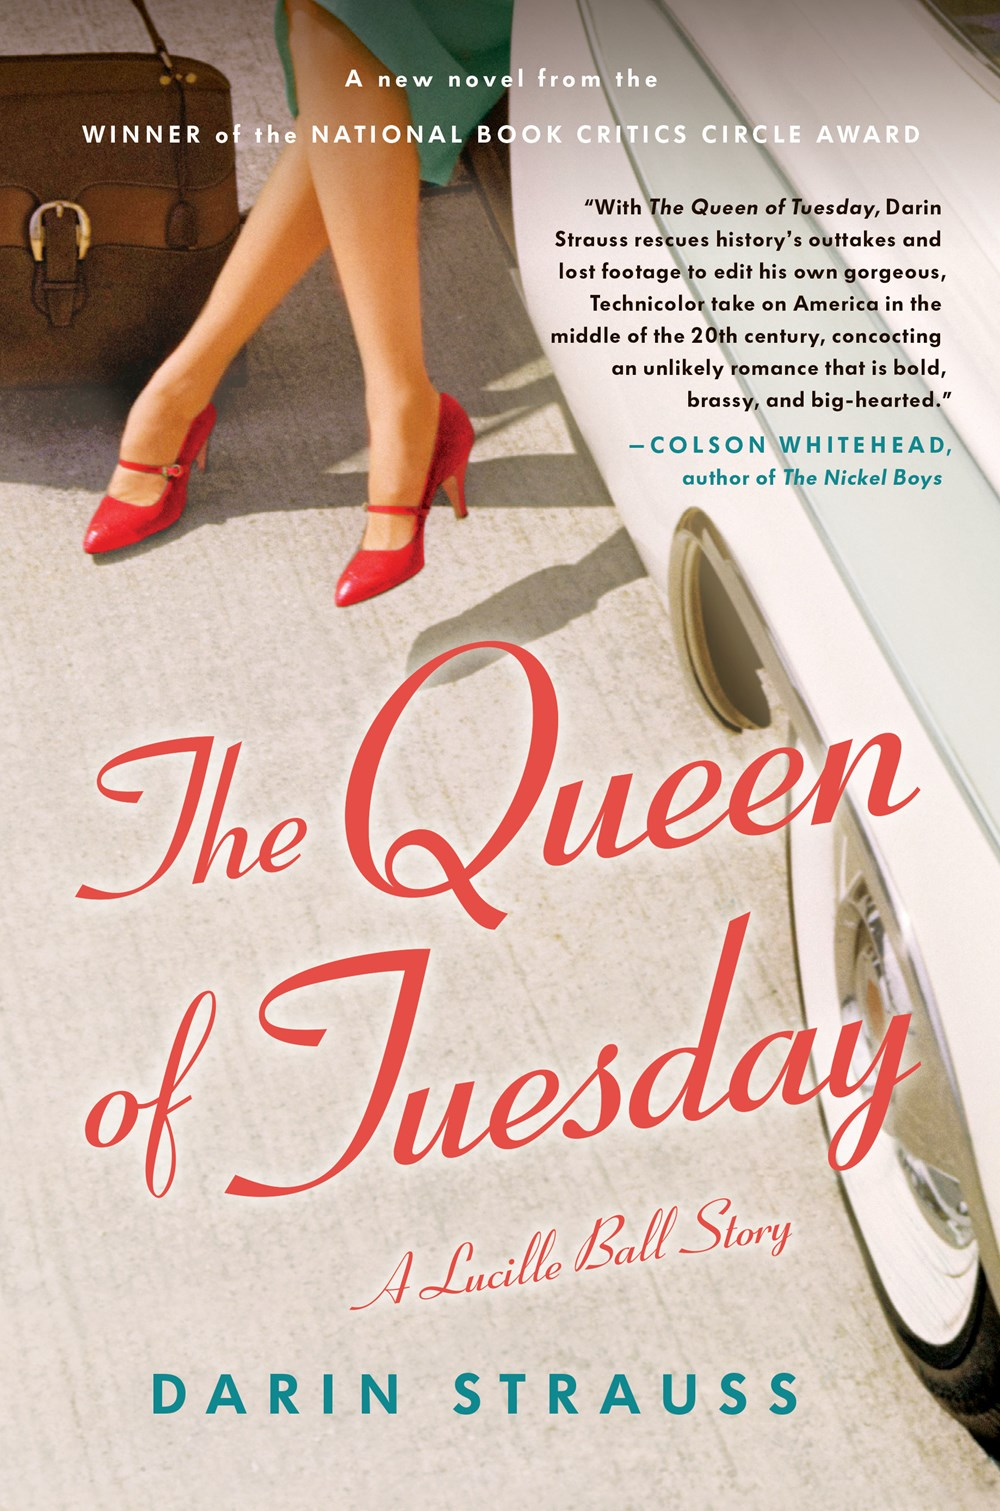 The Queen of Tuesday by Darin Strauss